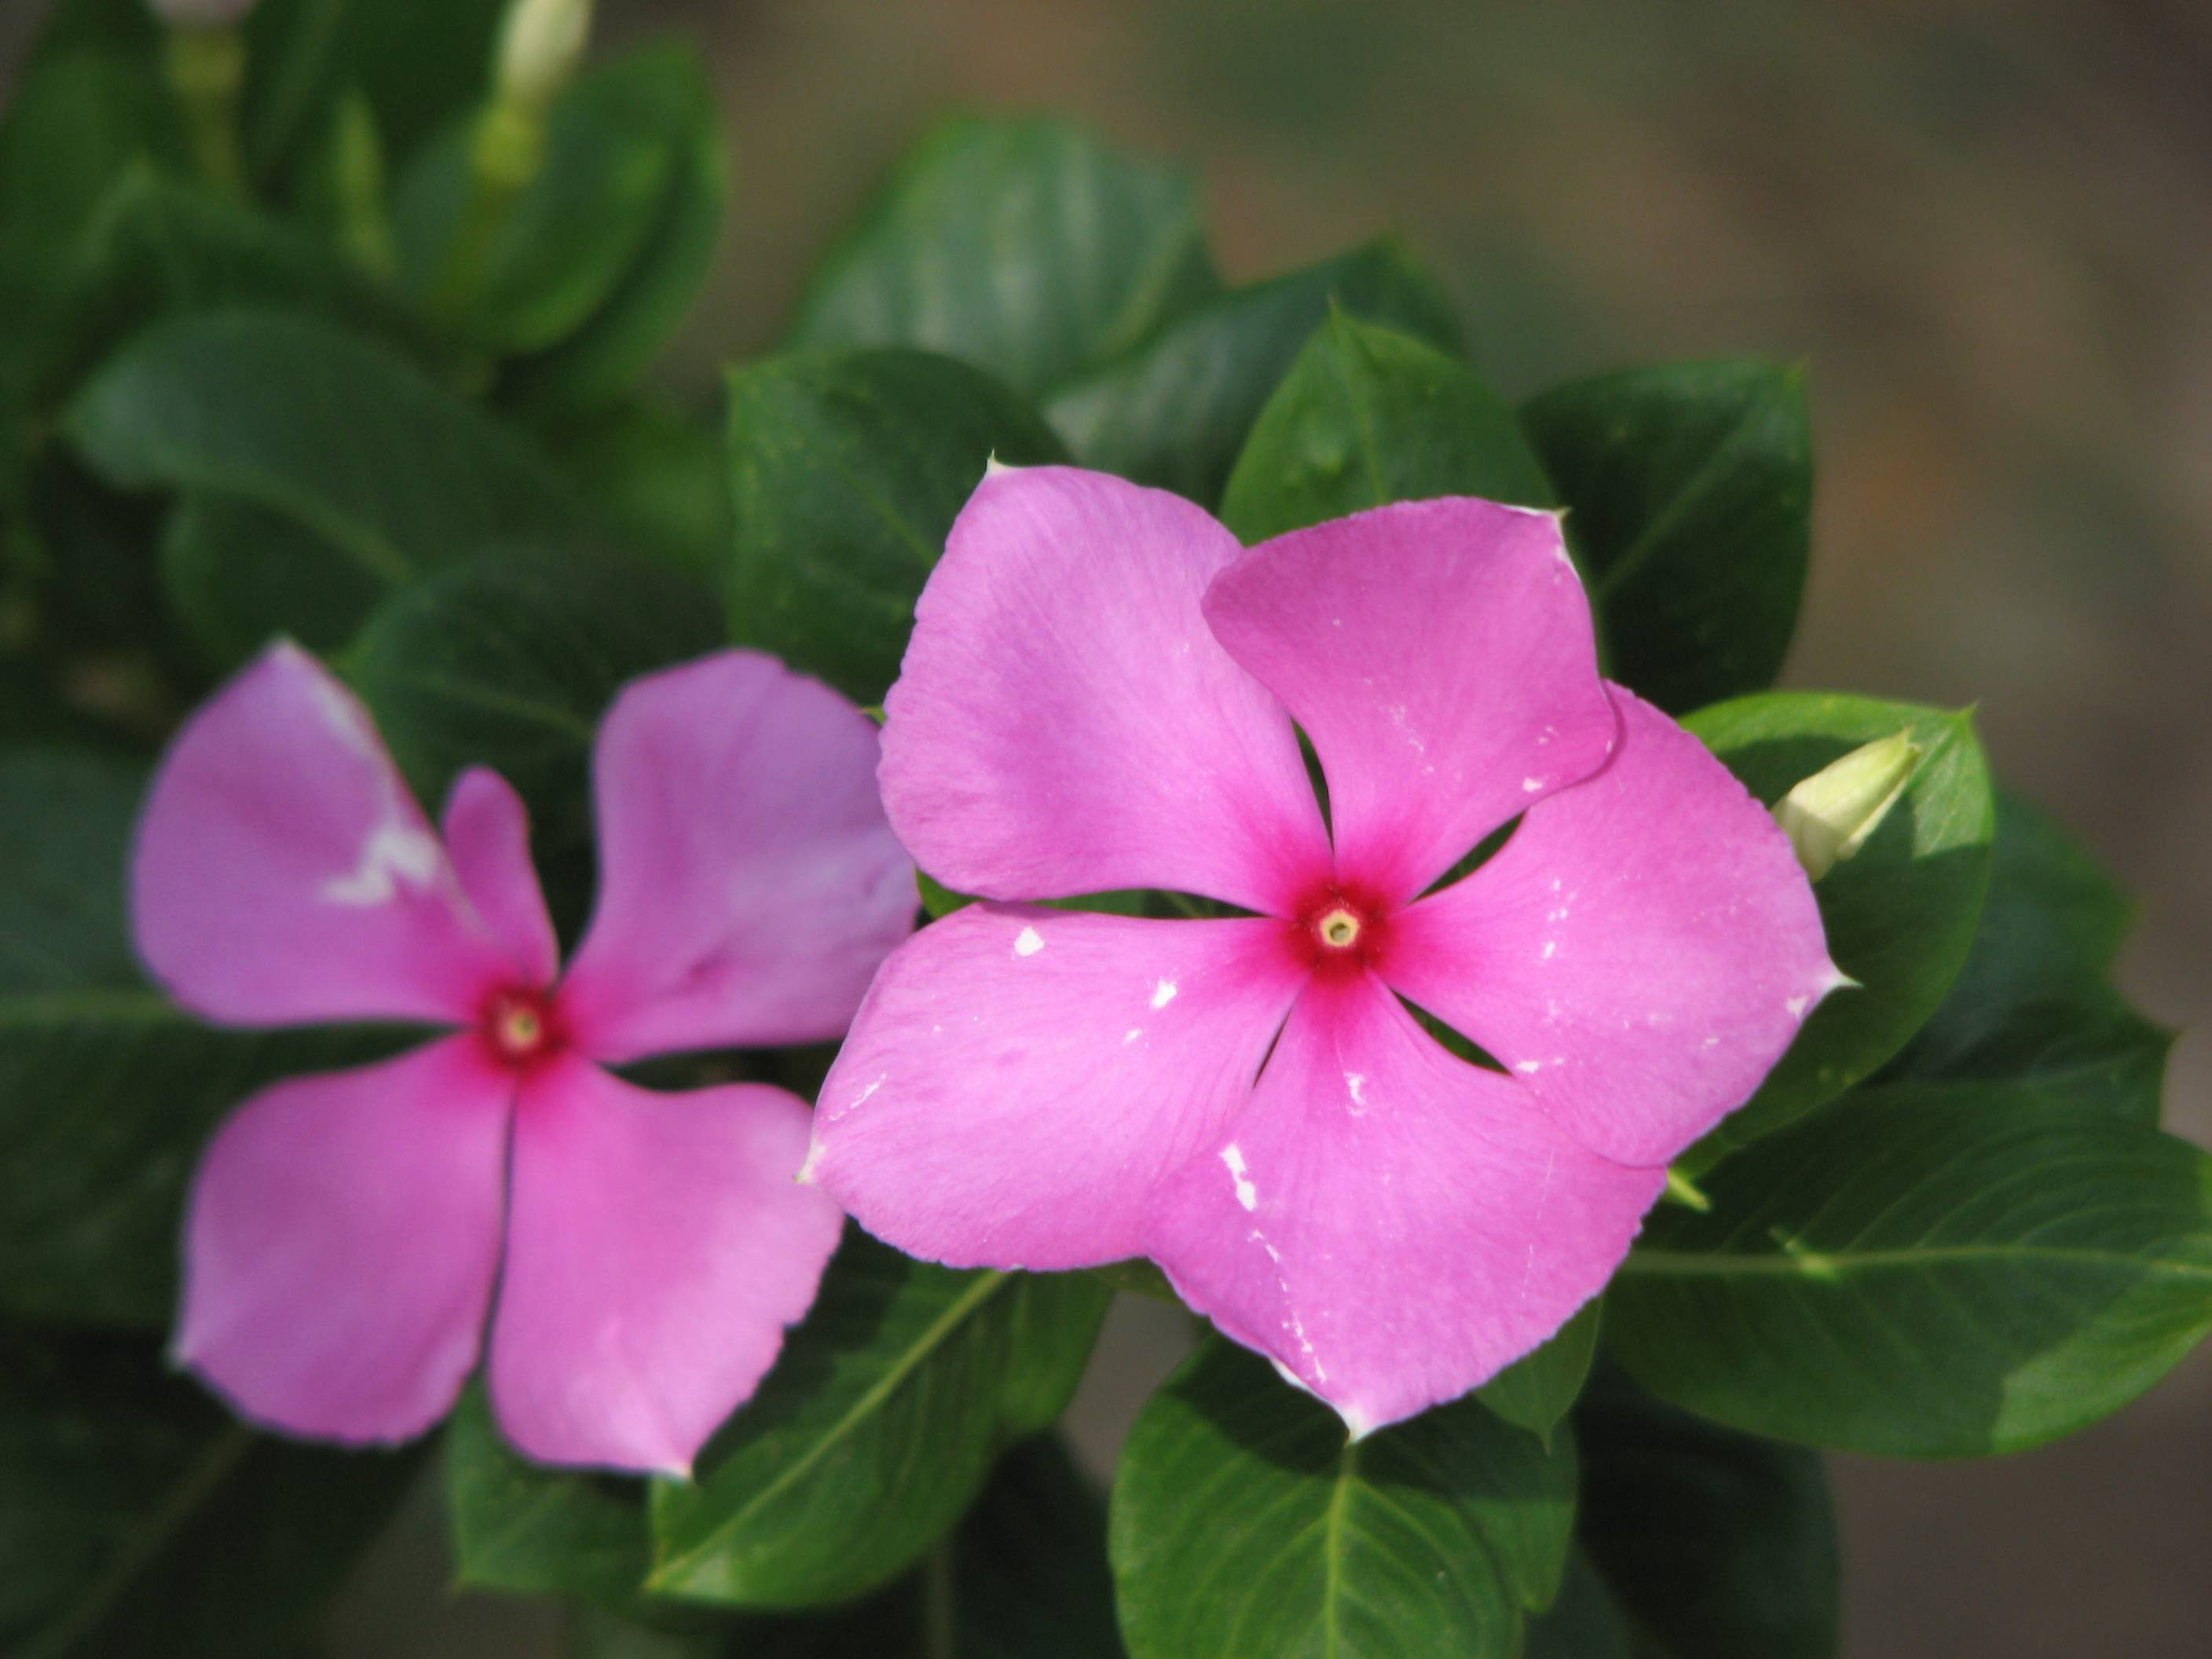 Flowers that start with p euffslemani pink flowers beginning with a 22 high resolution wallpaper minnie root ruellia rosa periwinkle p jpg mightylinksfo